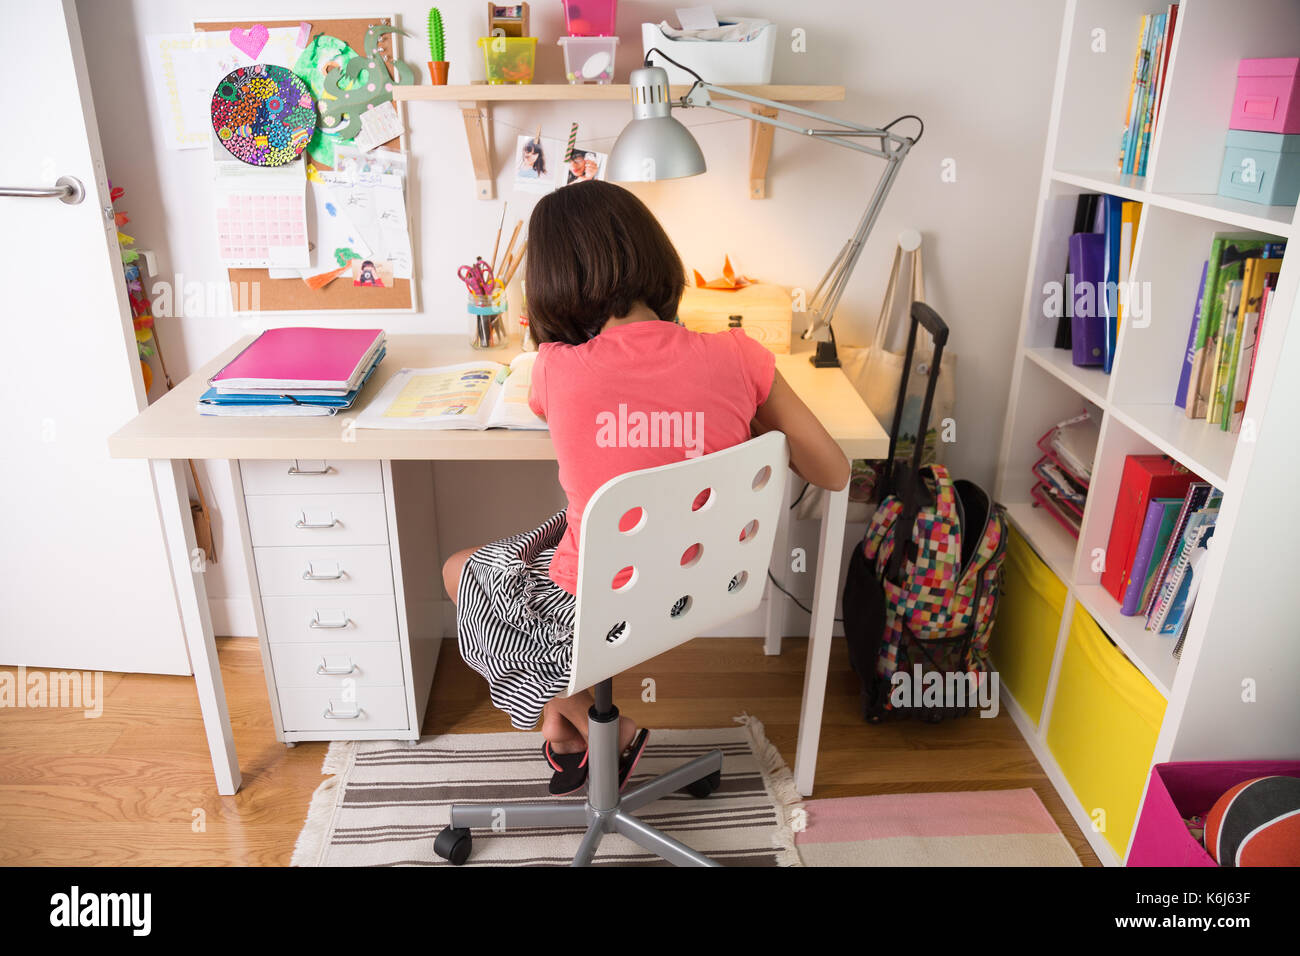 School girl doing homework at home in her desk. Back view. Stock Photo